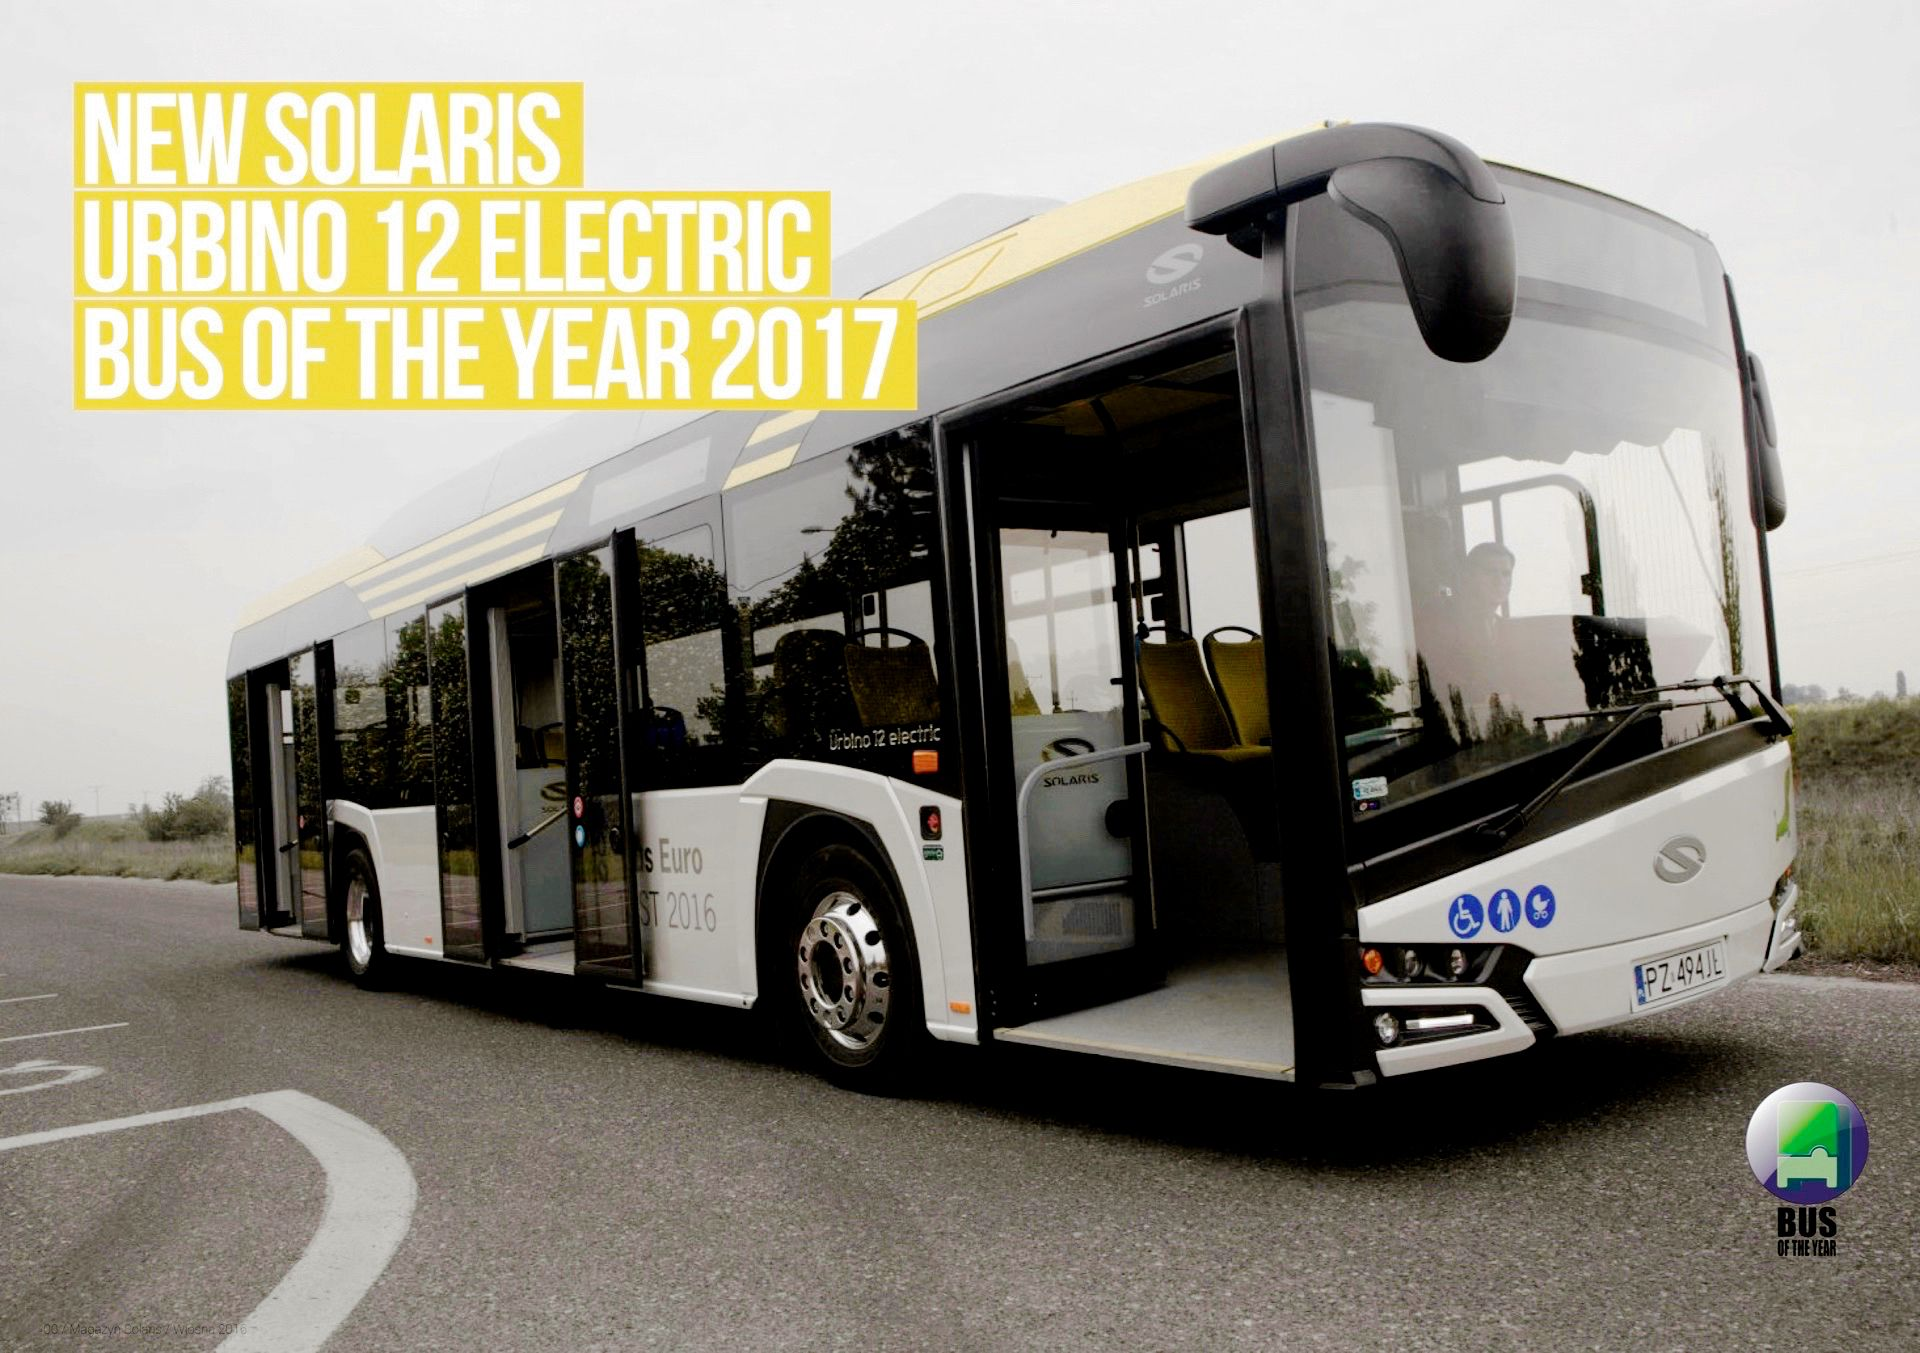 Solaris Urbino 12 Electric Bus Of The Year 2017